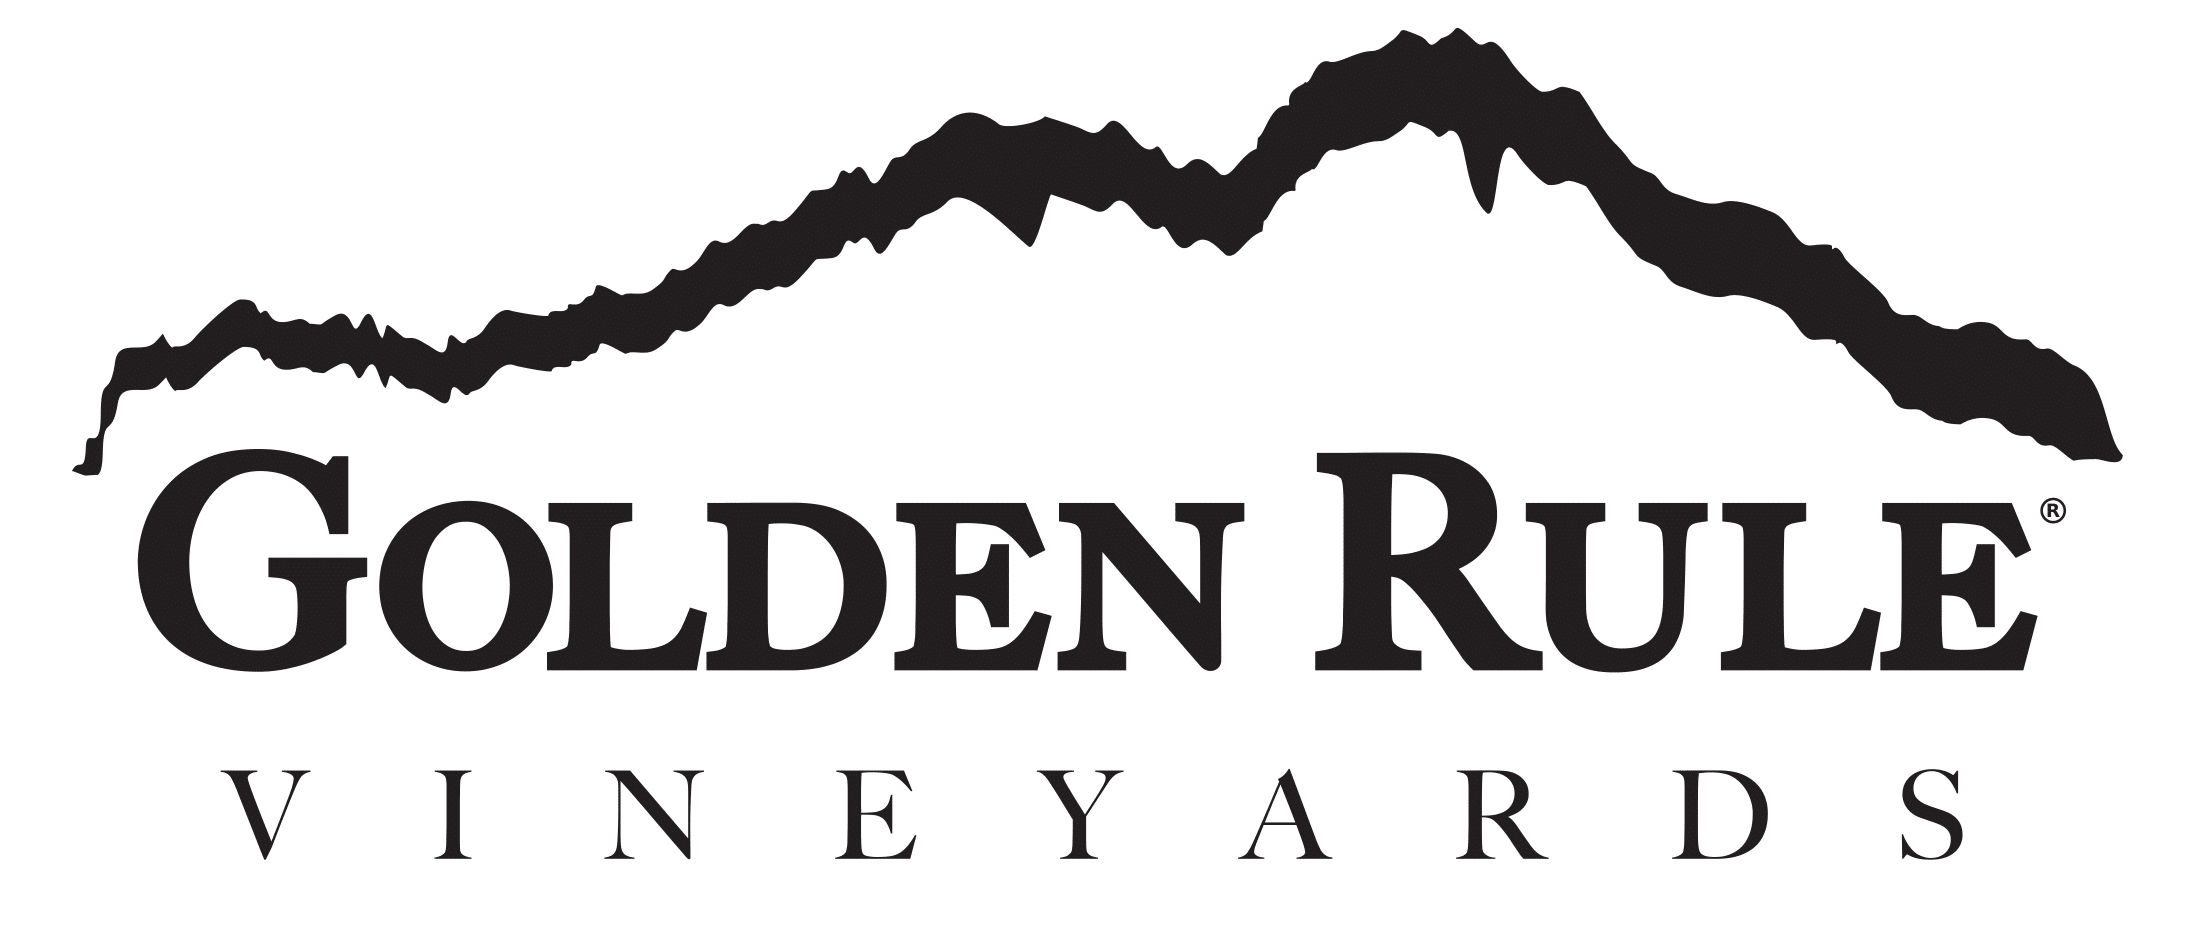 Golden Rule Vineyards